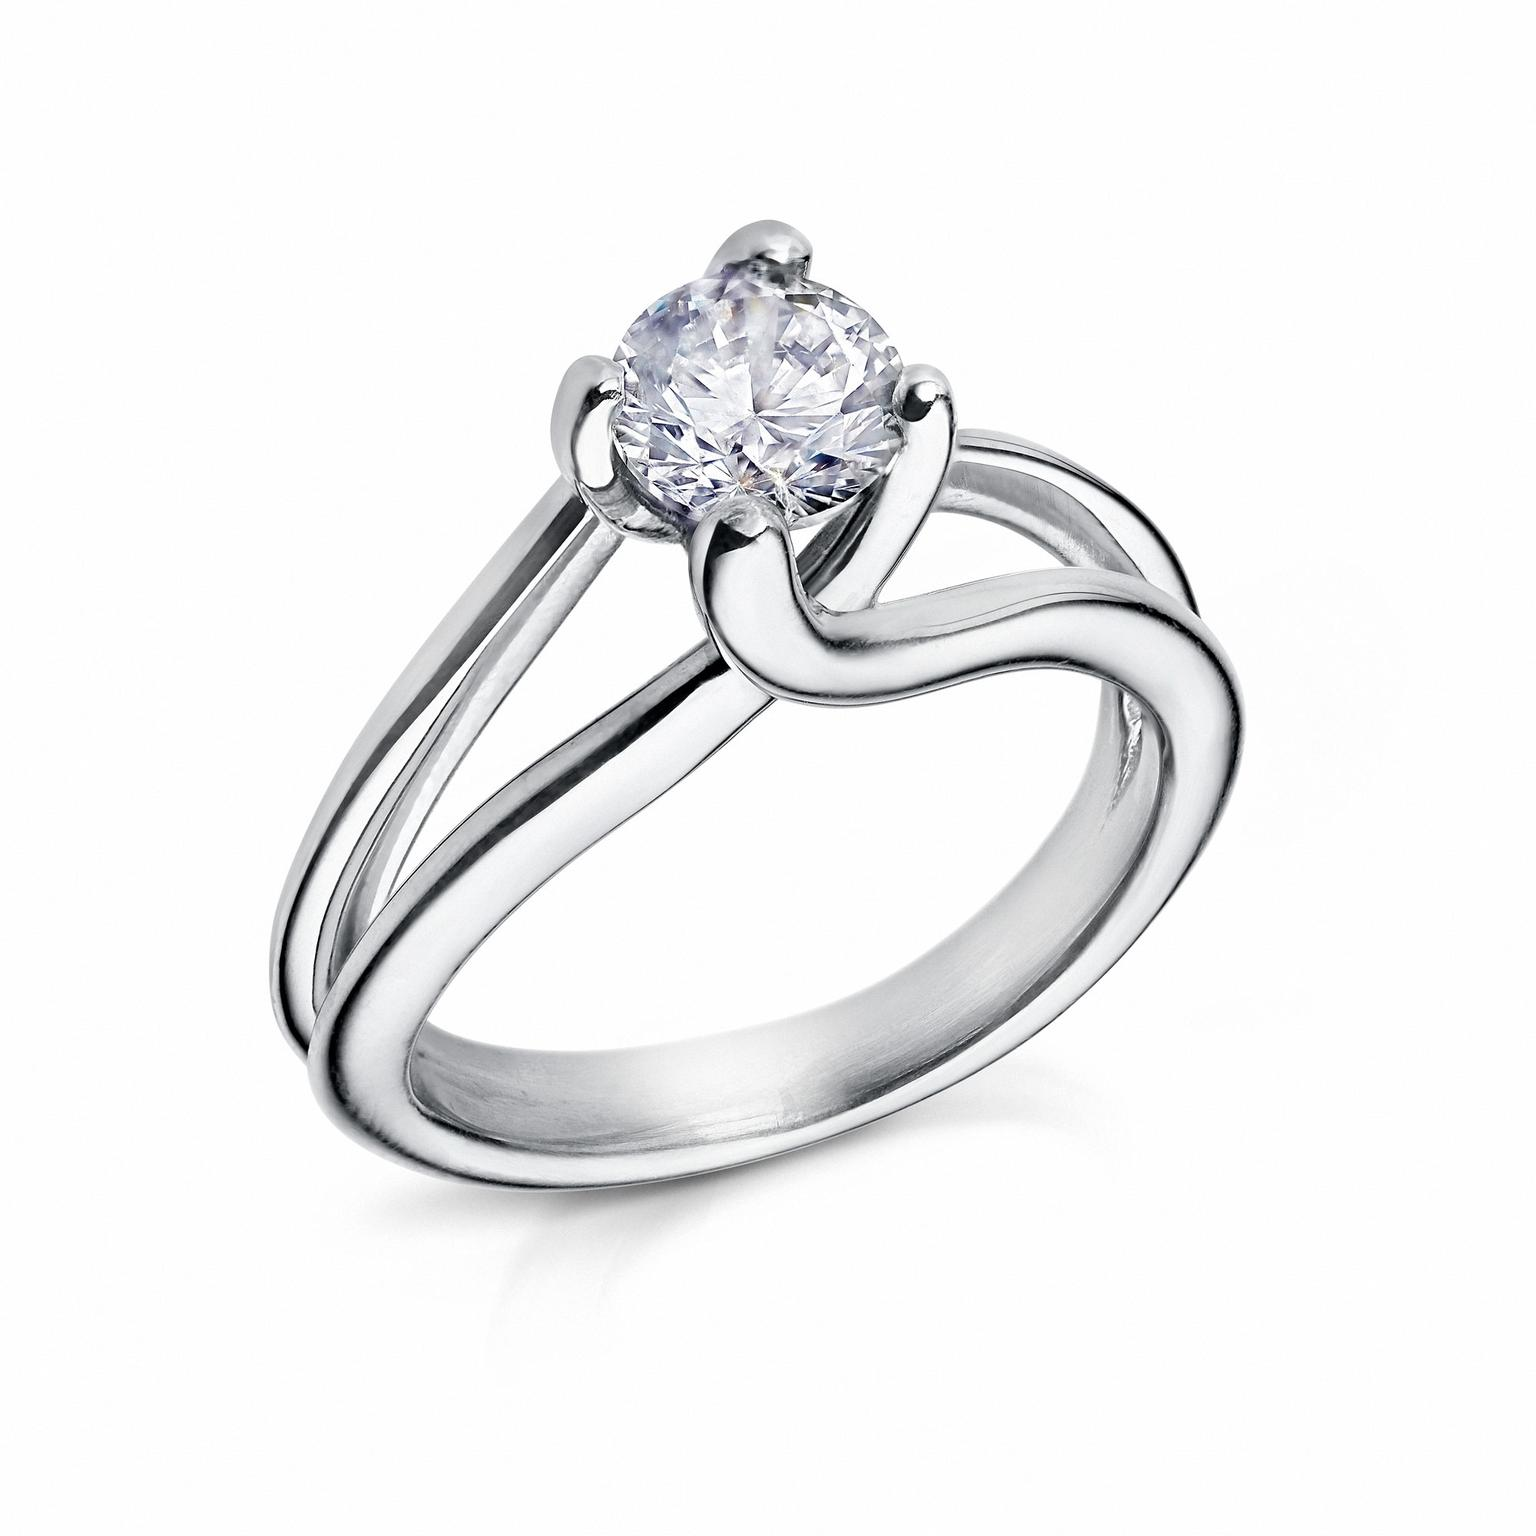 Arctic Circle Diamonds diamond double ring